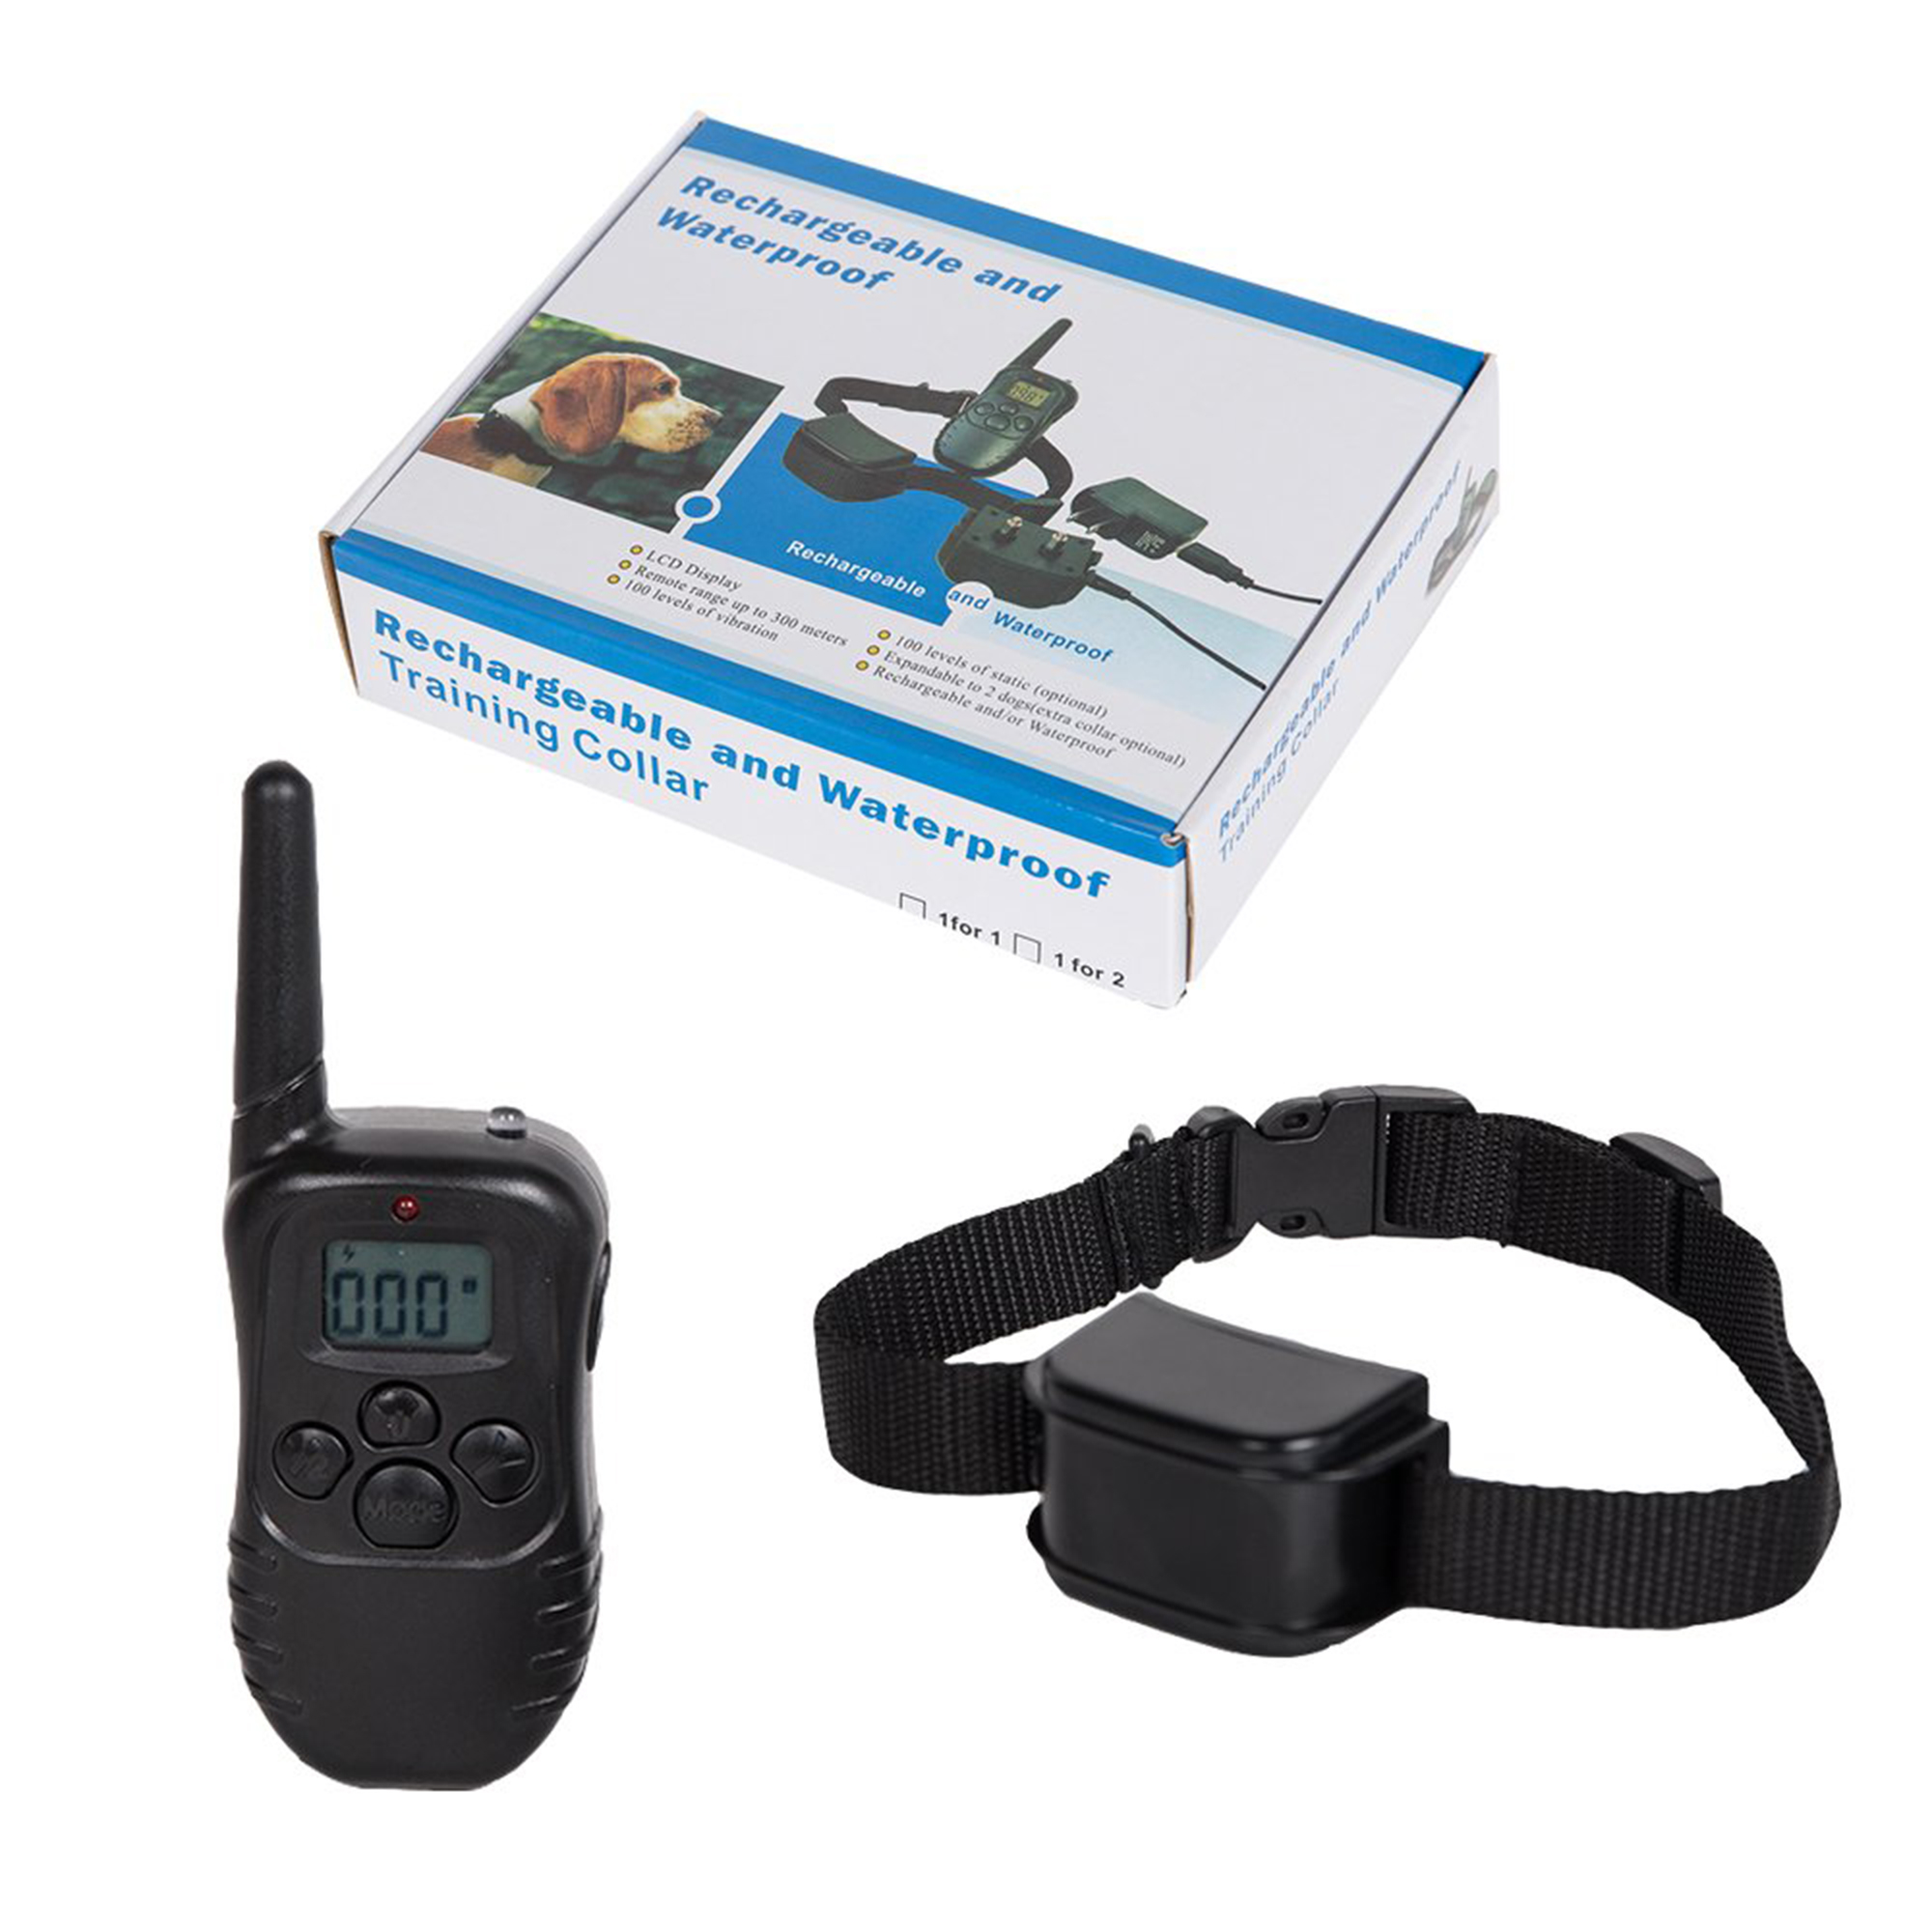 KARMAS PRODUCT Dog Training Collar with Beep, Vibration and Shock, 300 Yards Range Remote, Rechargeable and Waterproof